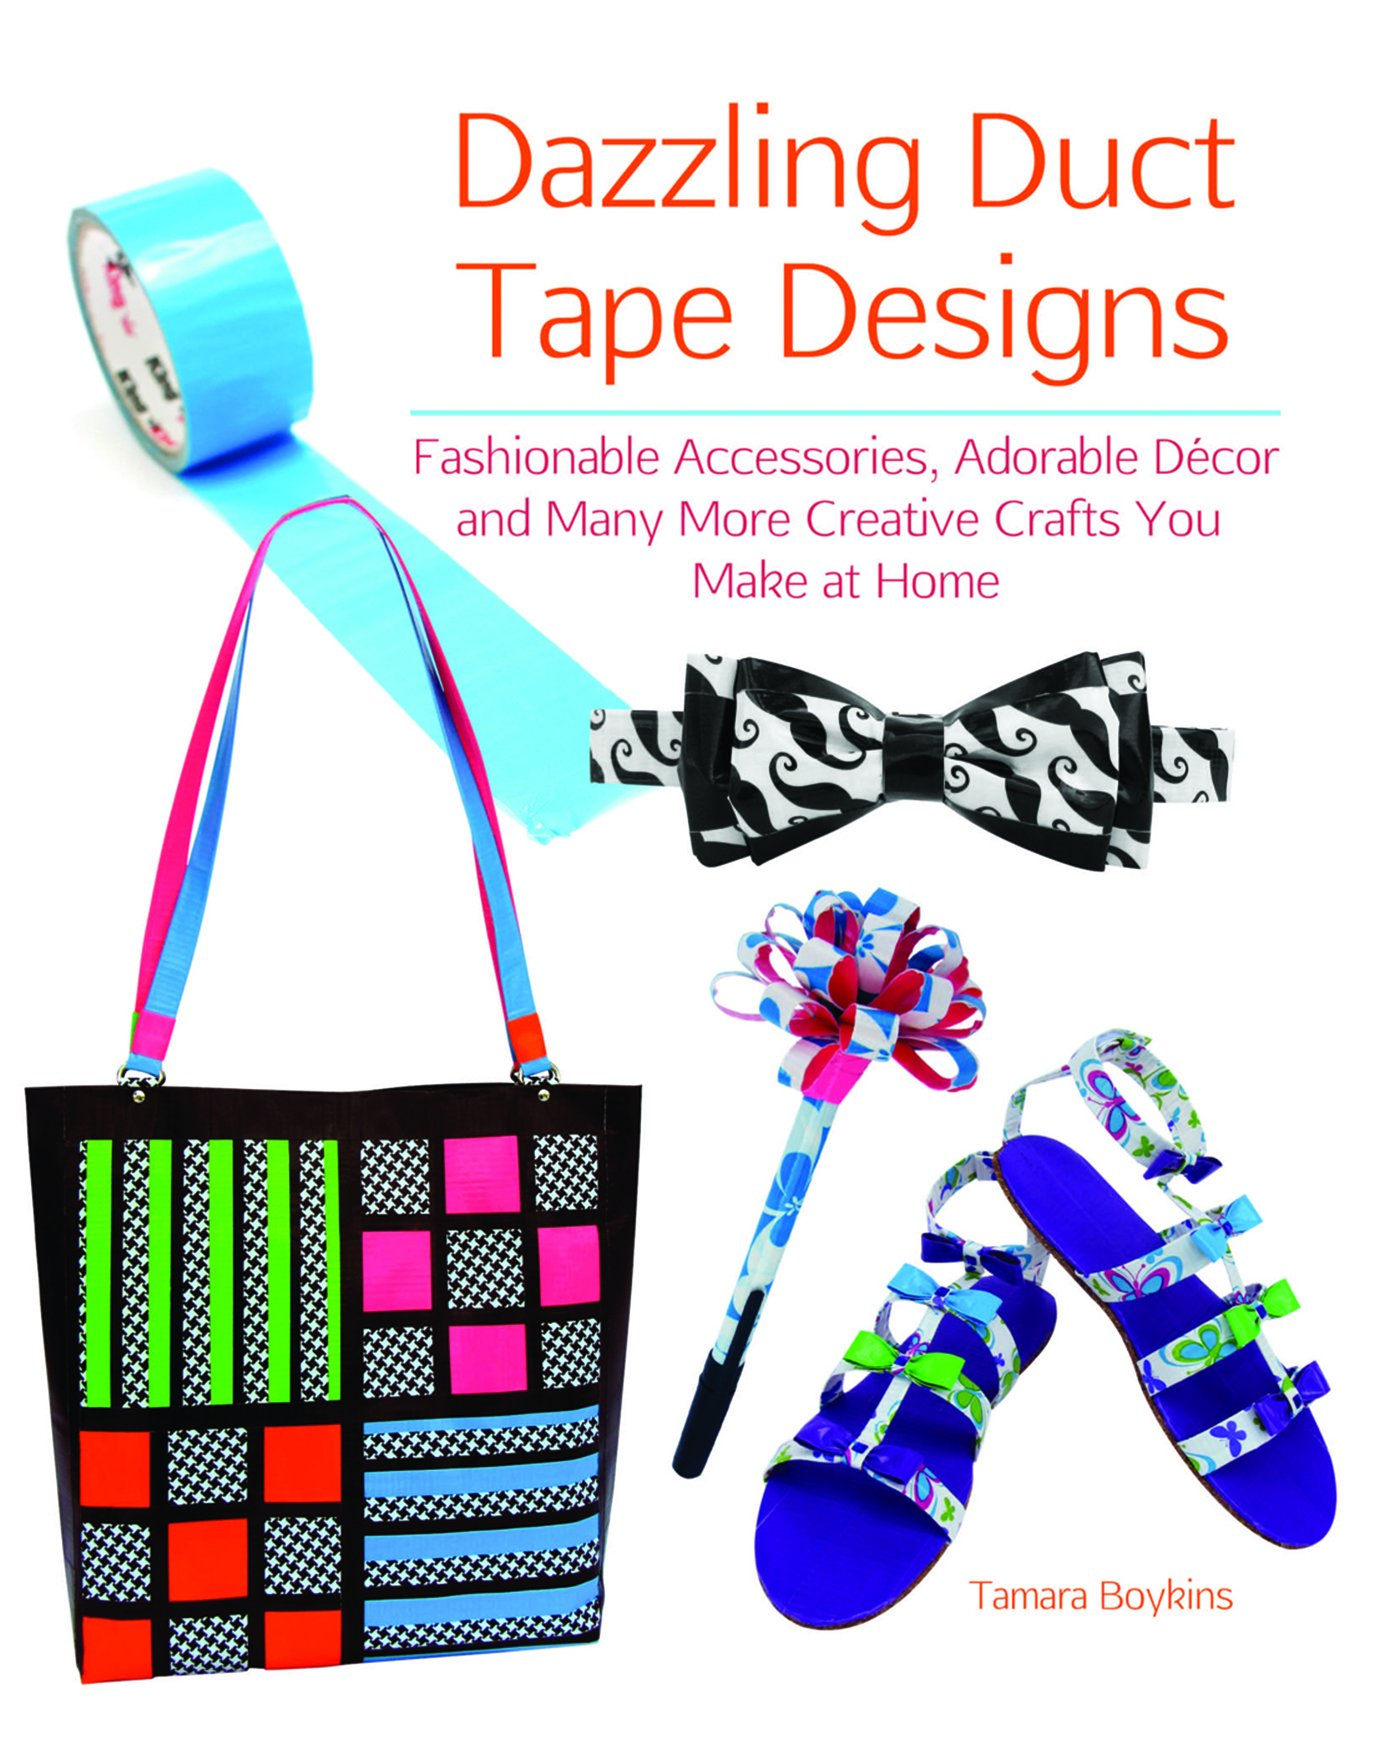 Download Dazzling Duct Tape Designs: Fashionable Accessories, Adorable Décor, and Many More Creative Crafts You Make At Home PDF